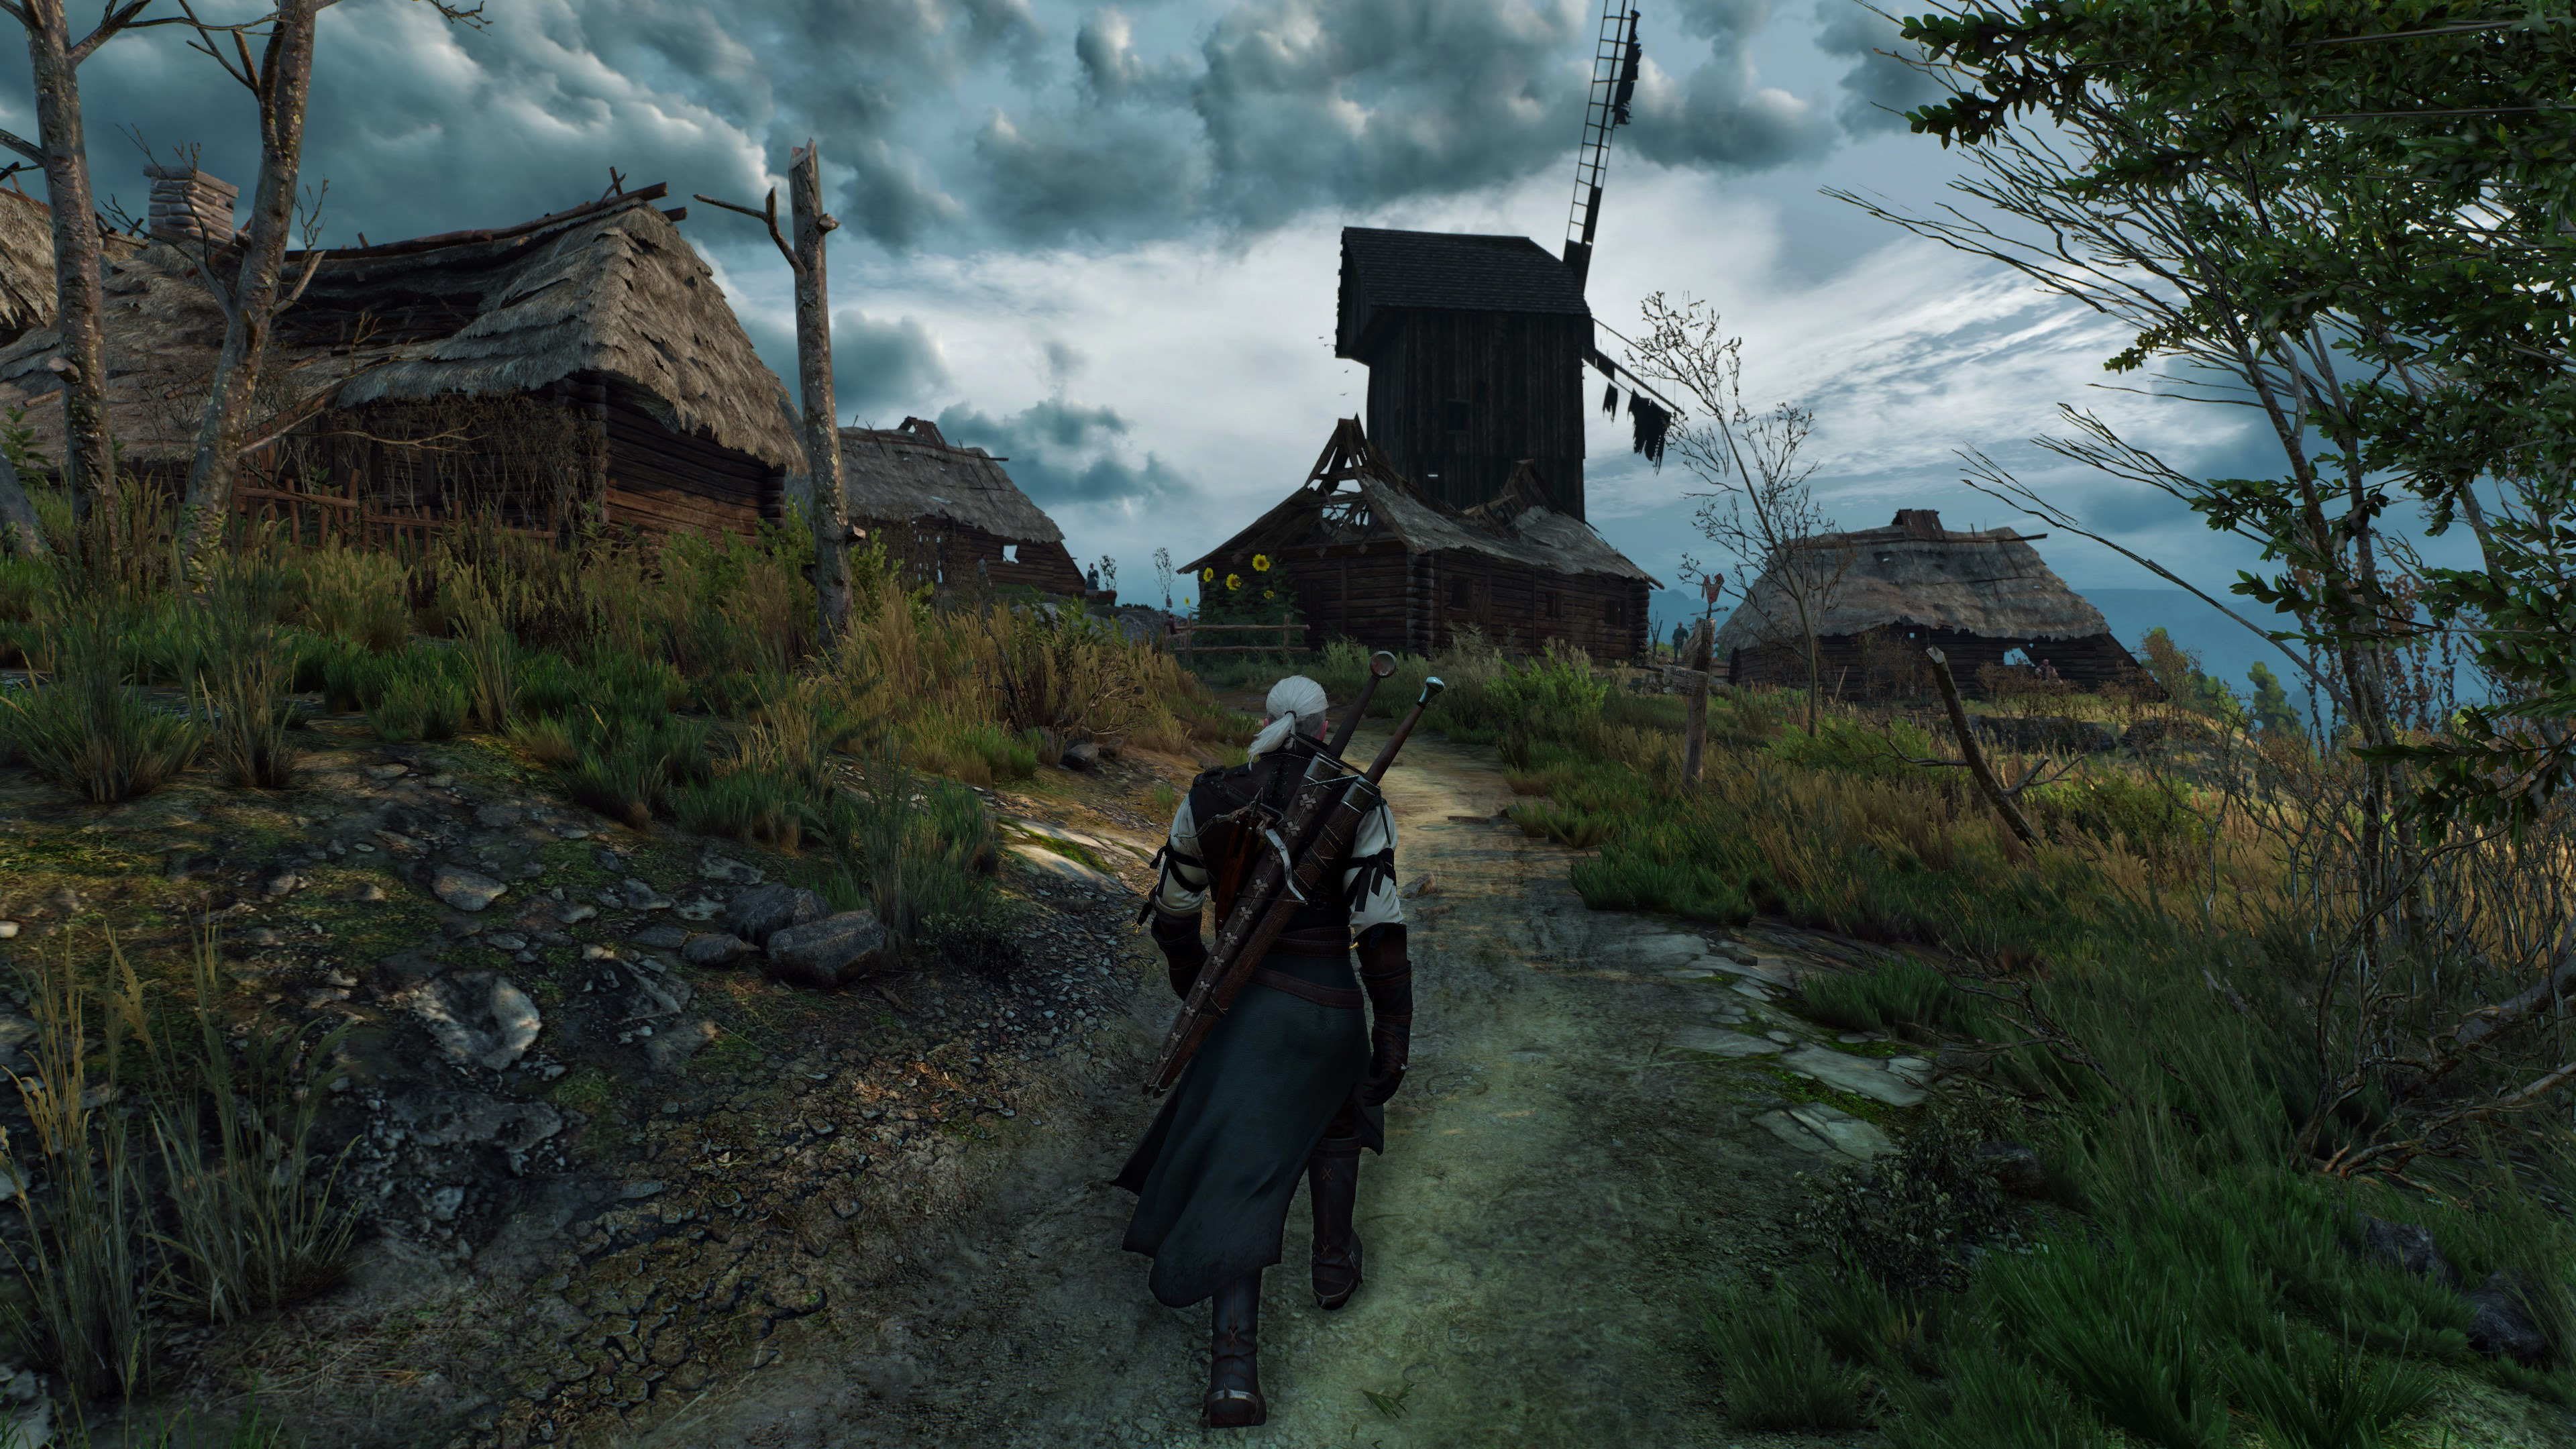 The Witcher 3 Wild Hunt 4k Ultra Hd Wallpaper High Quality Walls